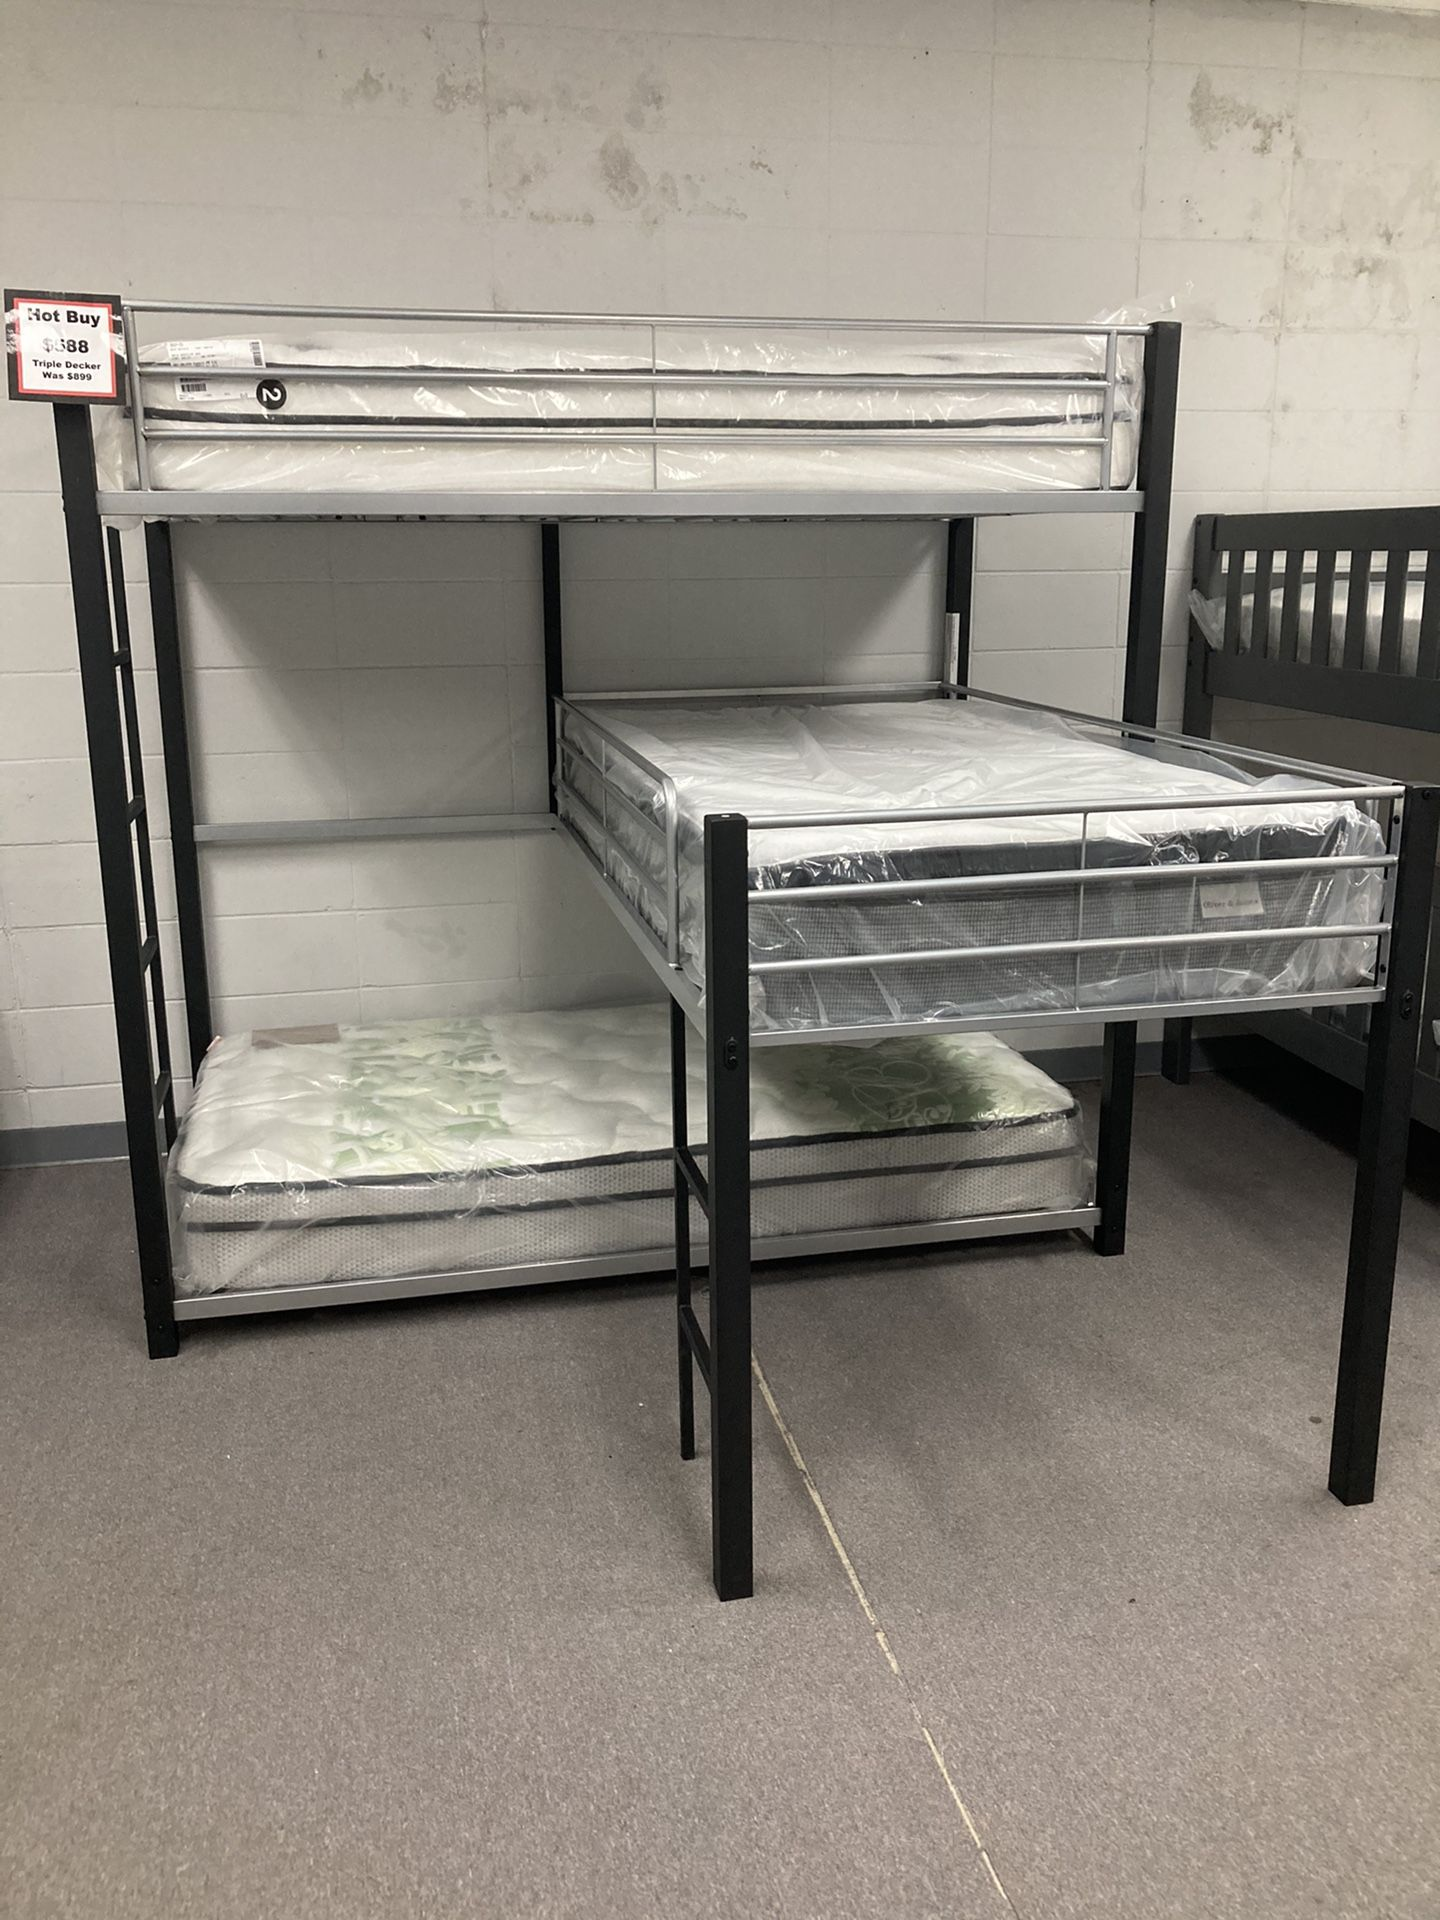 Brand New Kids Bunk Beds In Stock!! Low As $39 Down !!